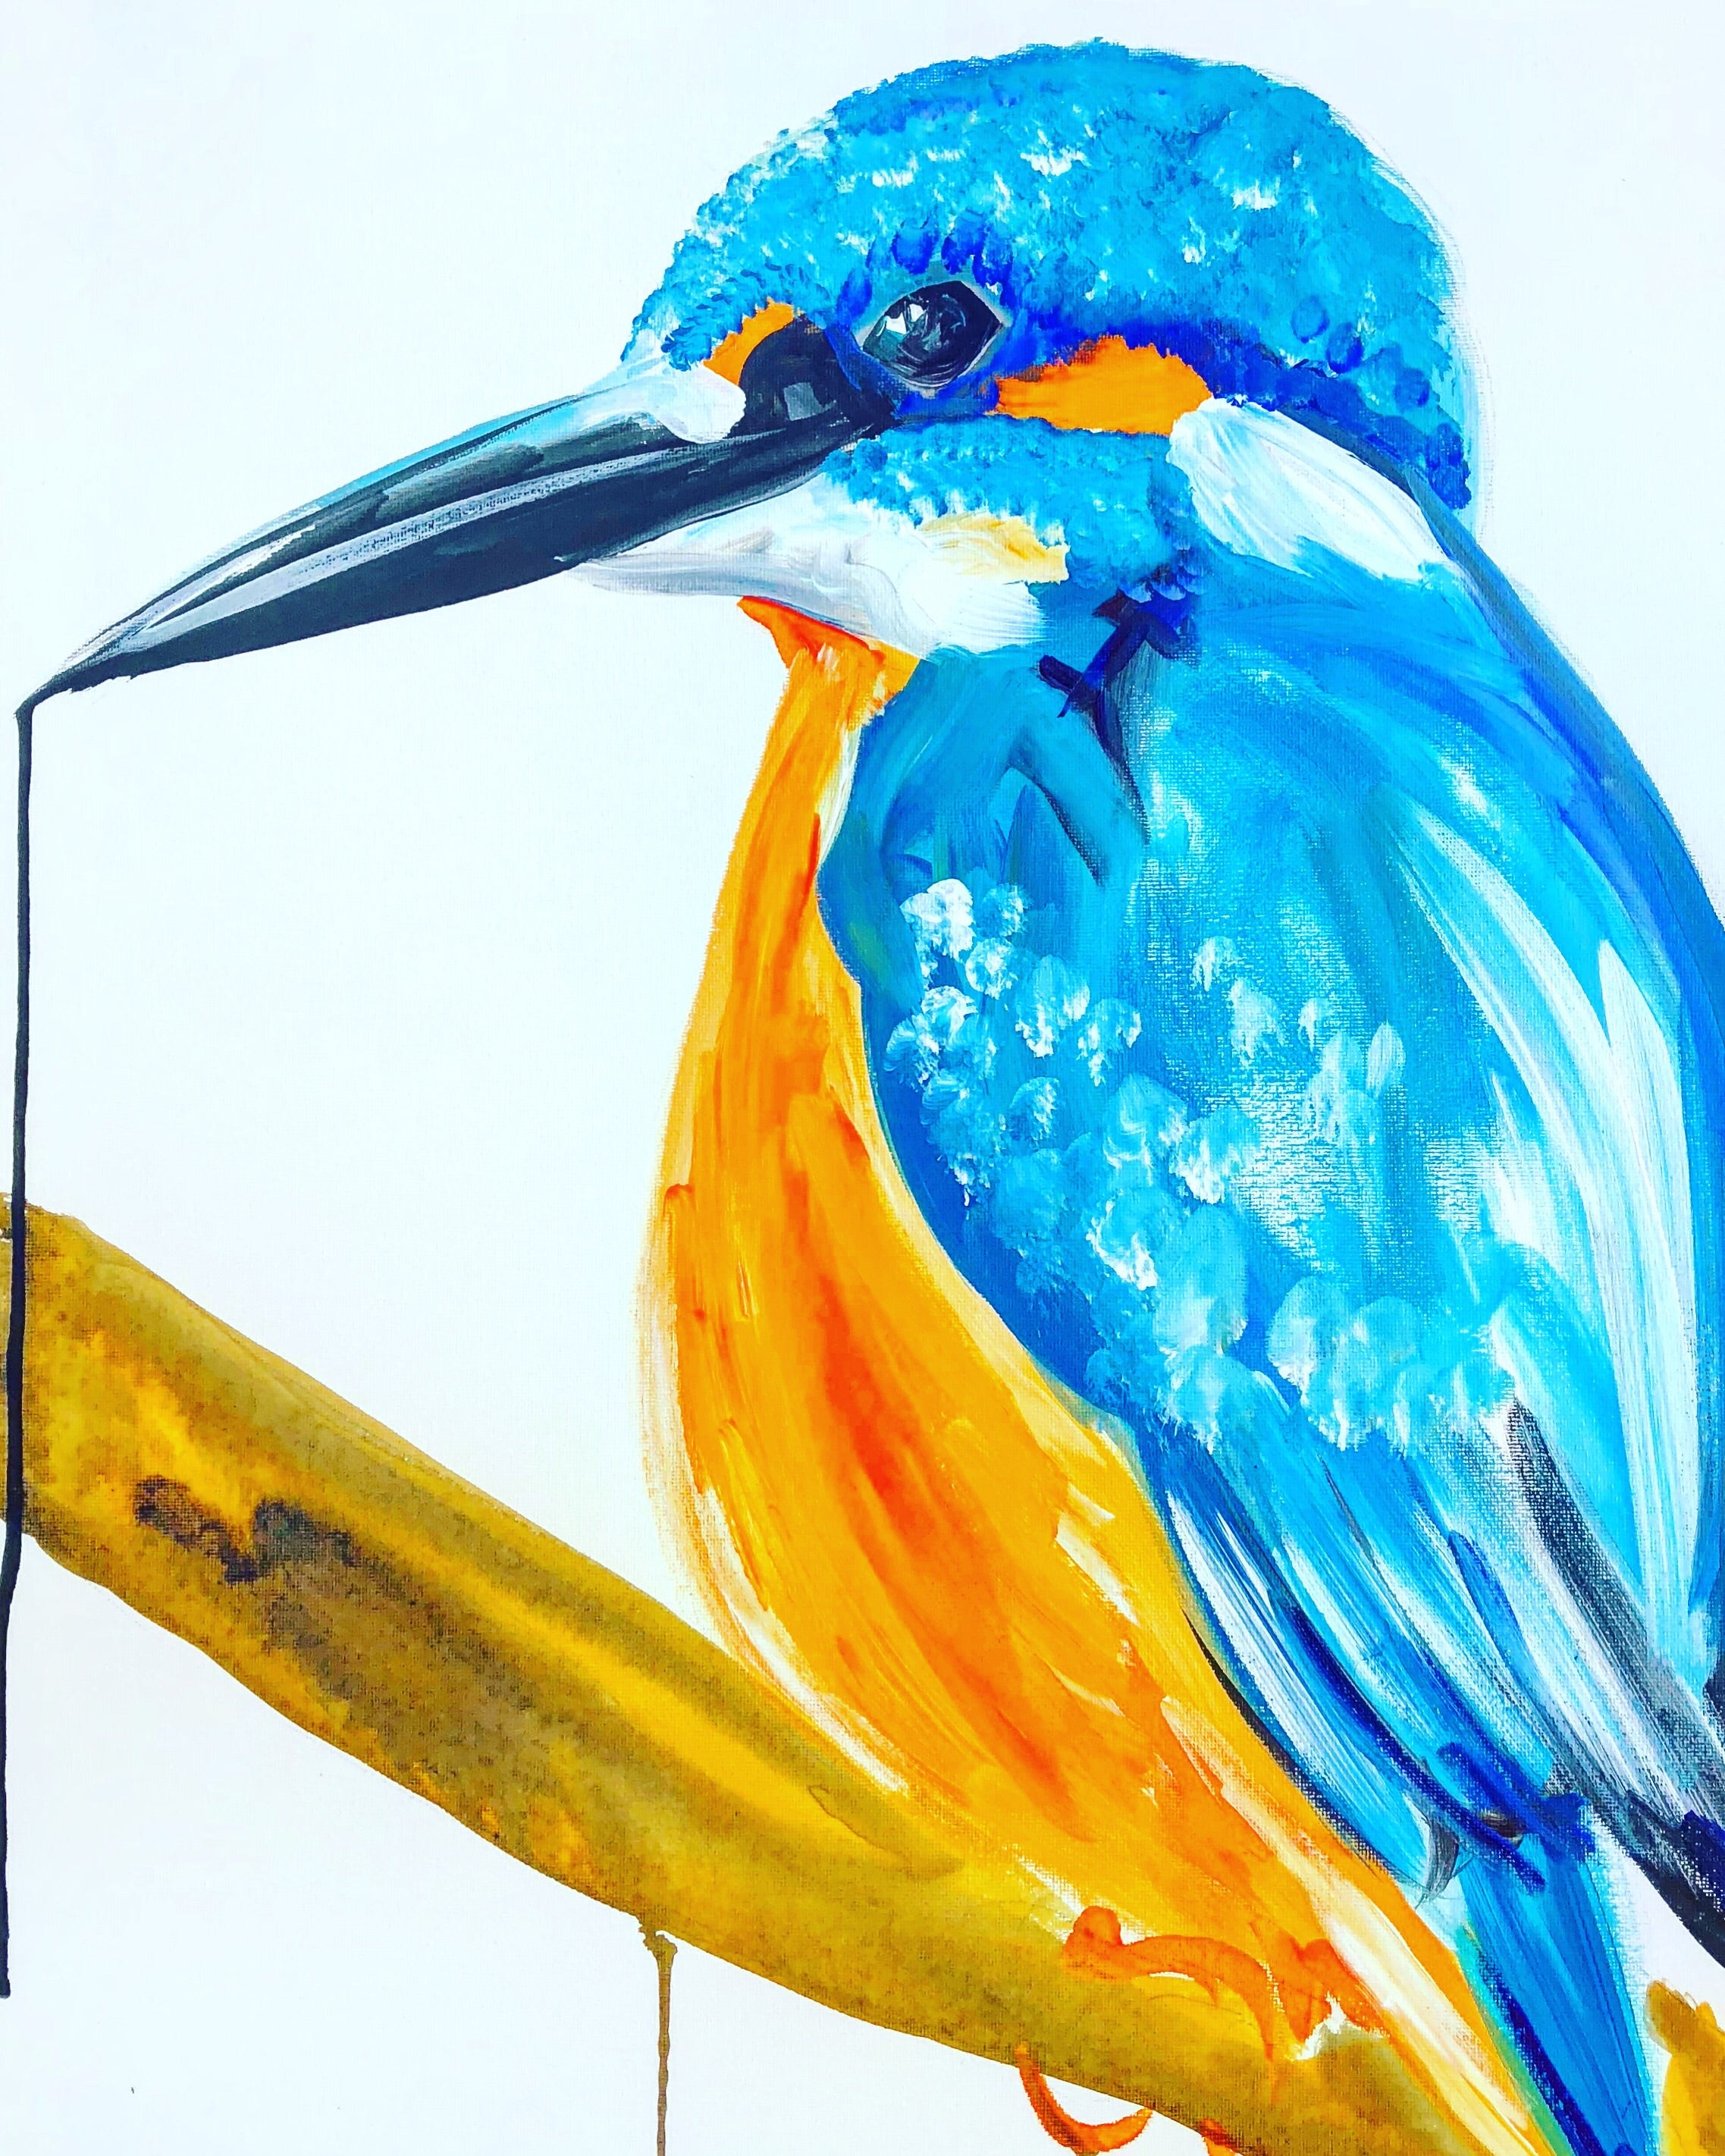 DAY17 #20minuteartchallenge KINGFISHER